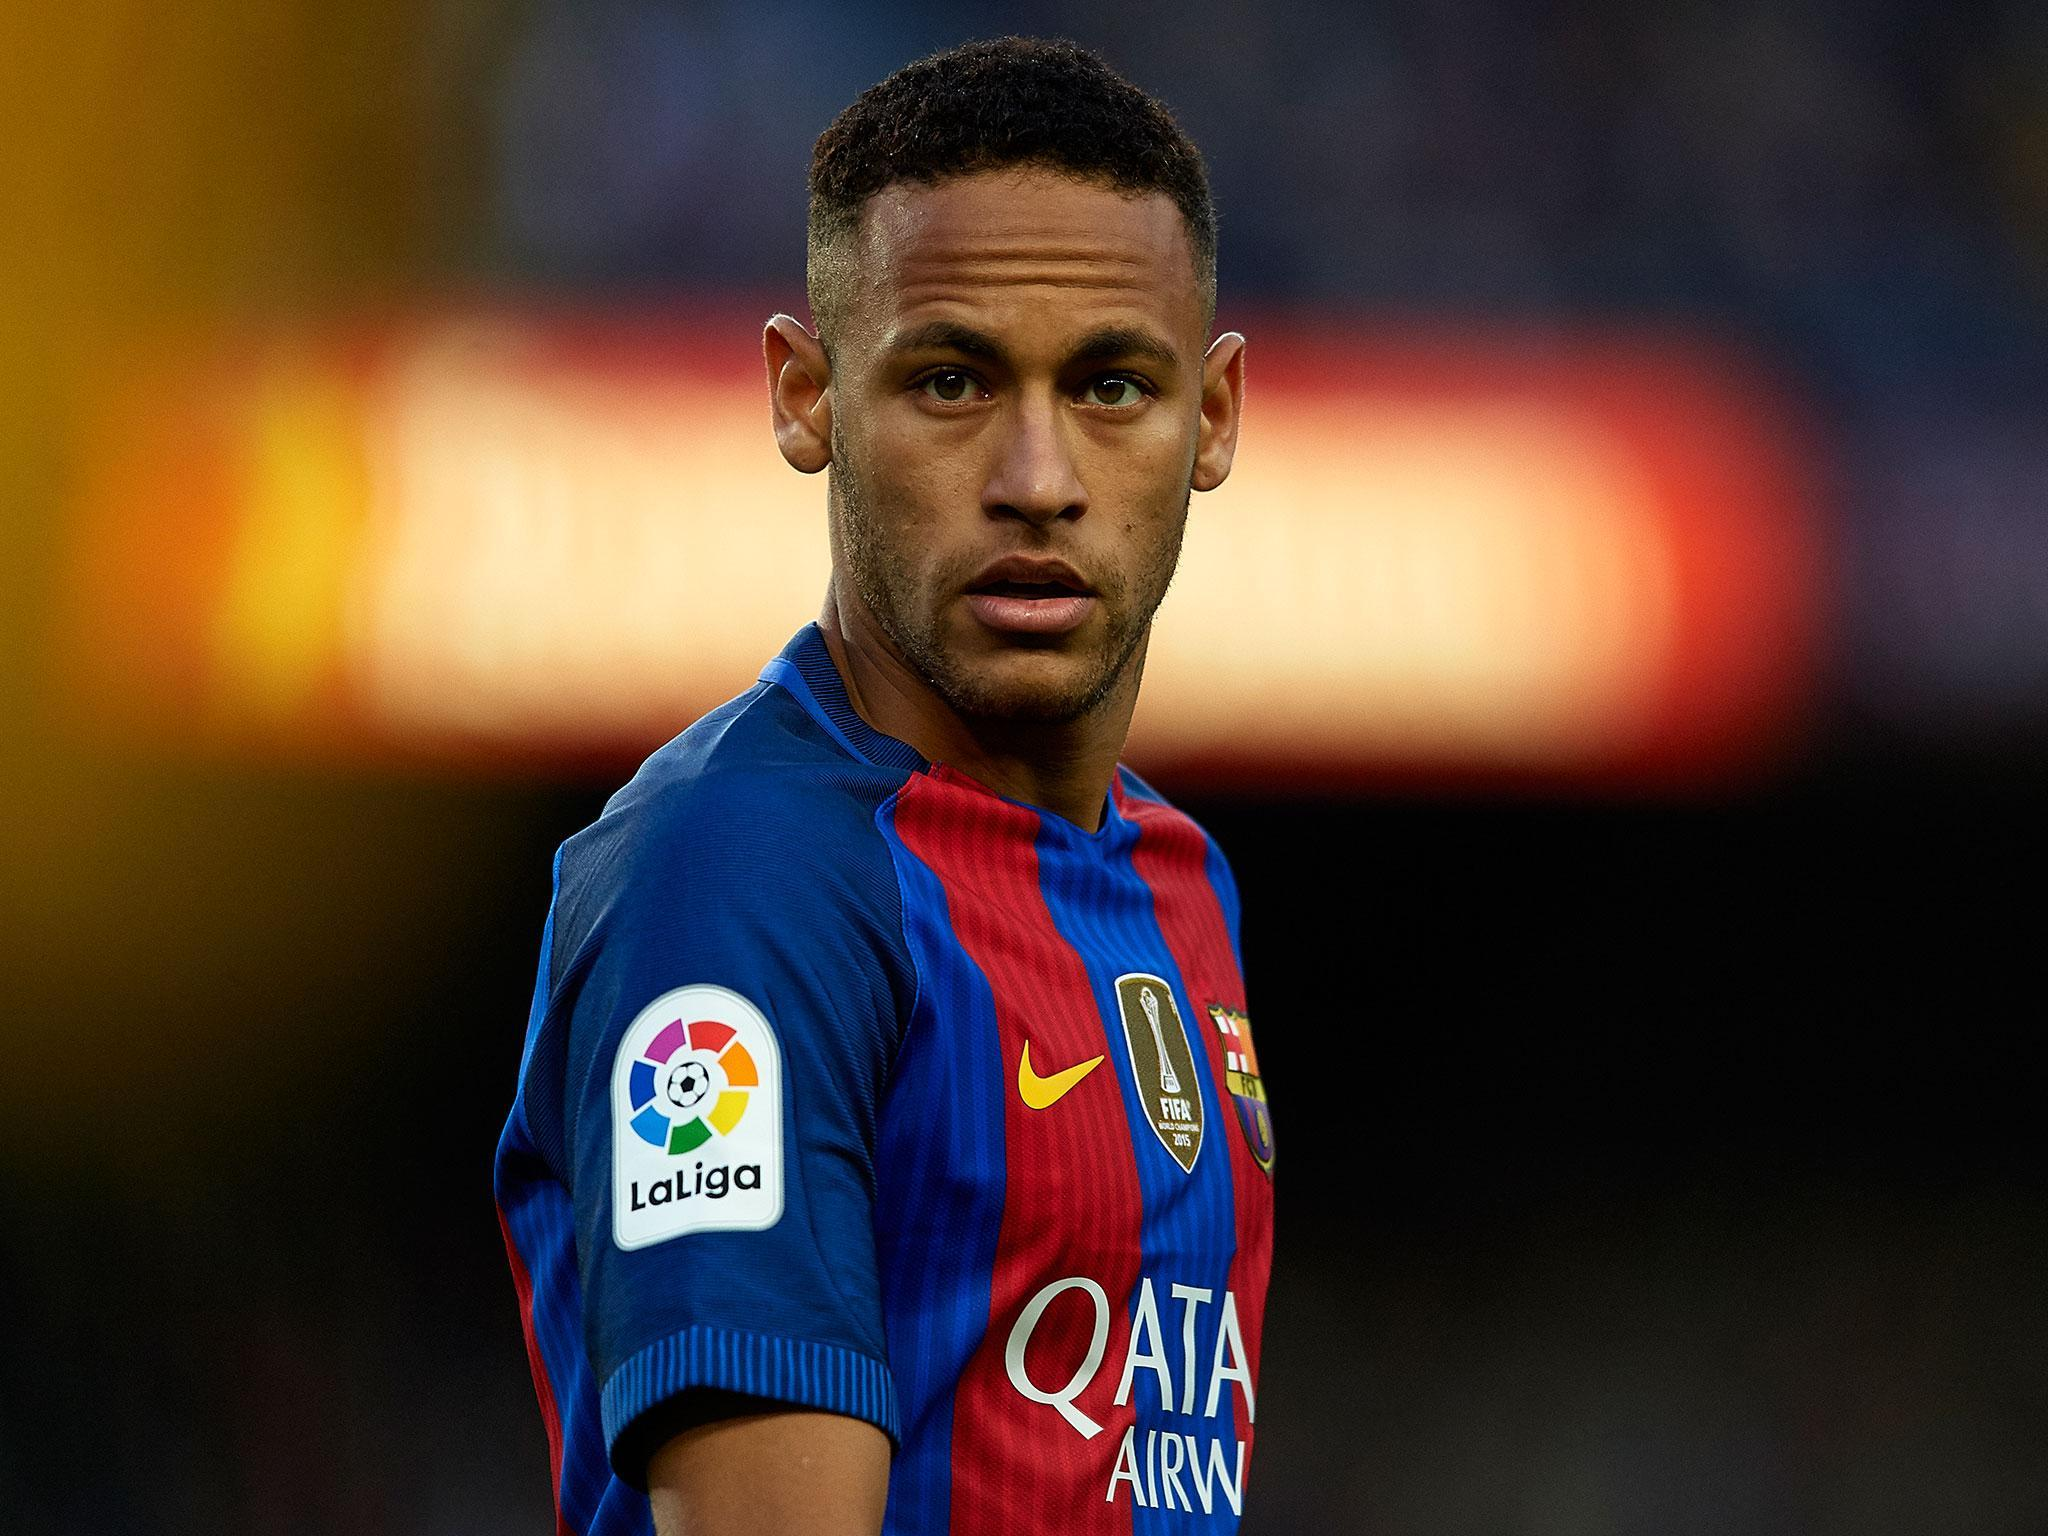 Neymar Could Face Two Year Jail Term After Judge Calls For